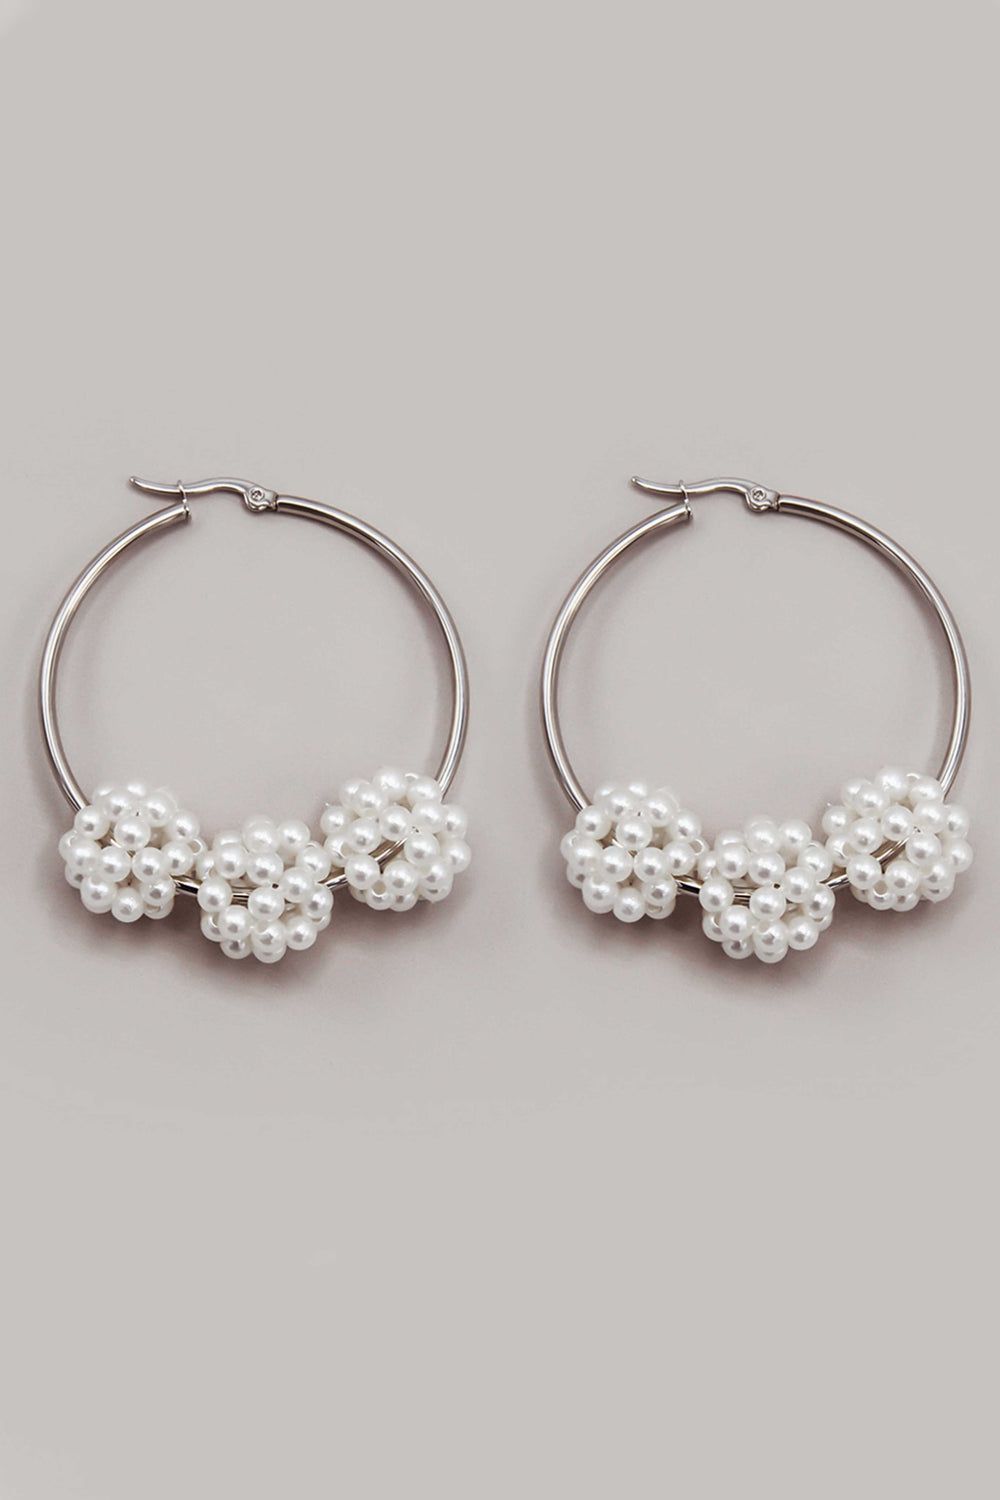 DAY DREAMING EARRINGS IN SILVER | Women's Online Shopping | CHICLEFRIQUE  (4390944964697)